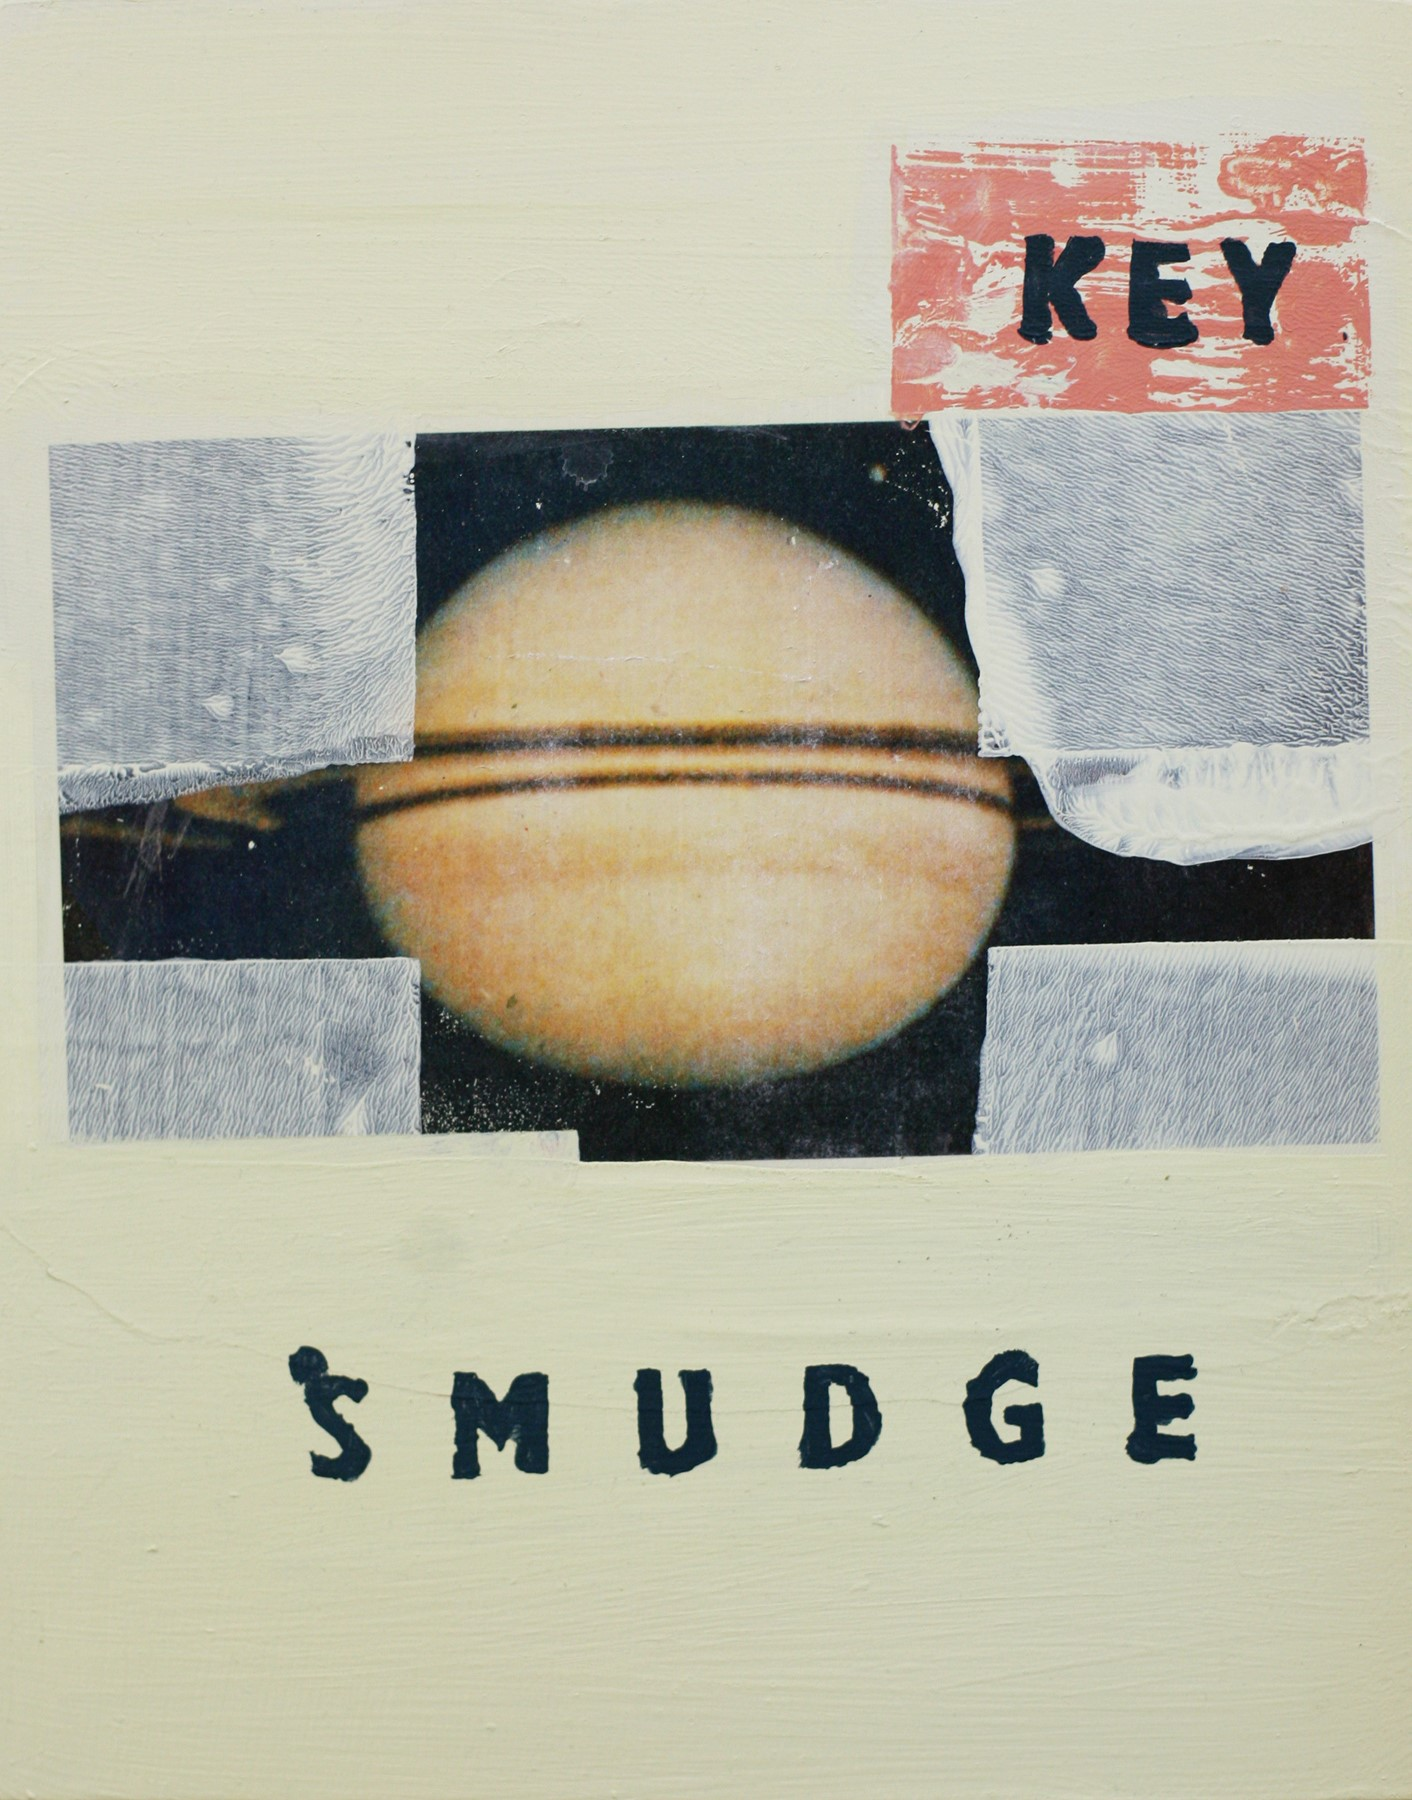 """The Key Smudge  2012, acrylic and archival print on paper mounted to panel, 11 x 14"""""""